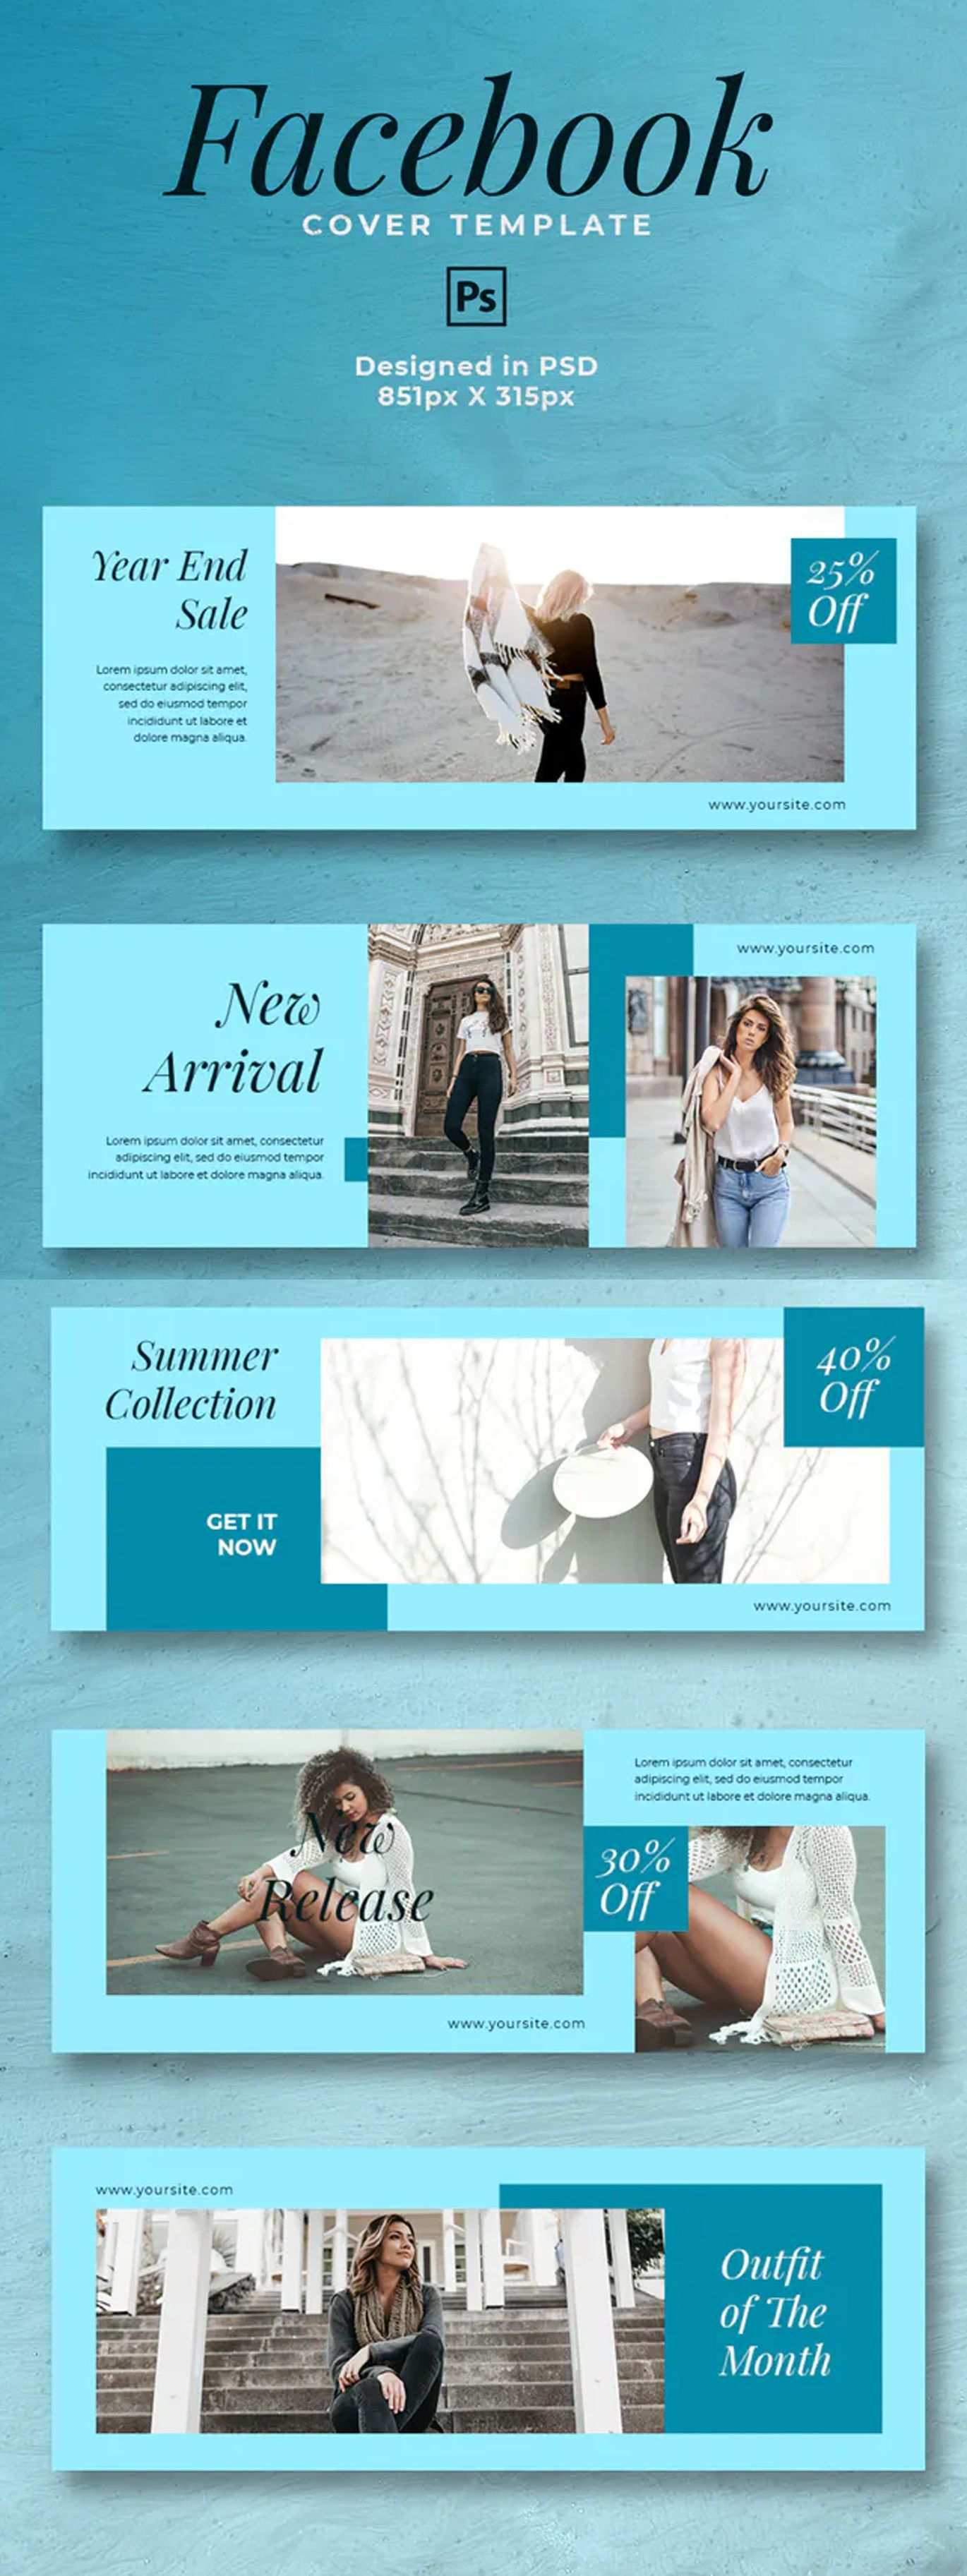 Trend Fashion Facebook Cover Template Psd In 2020 Facebook Cover Template Cover Template Facebook Cover